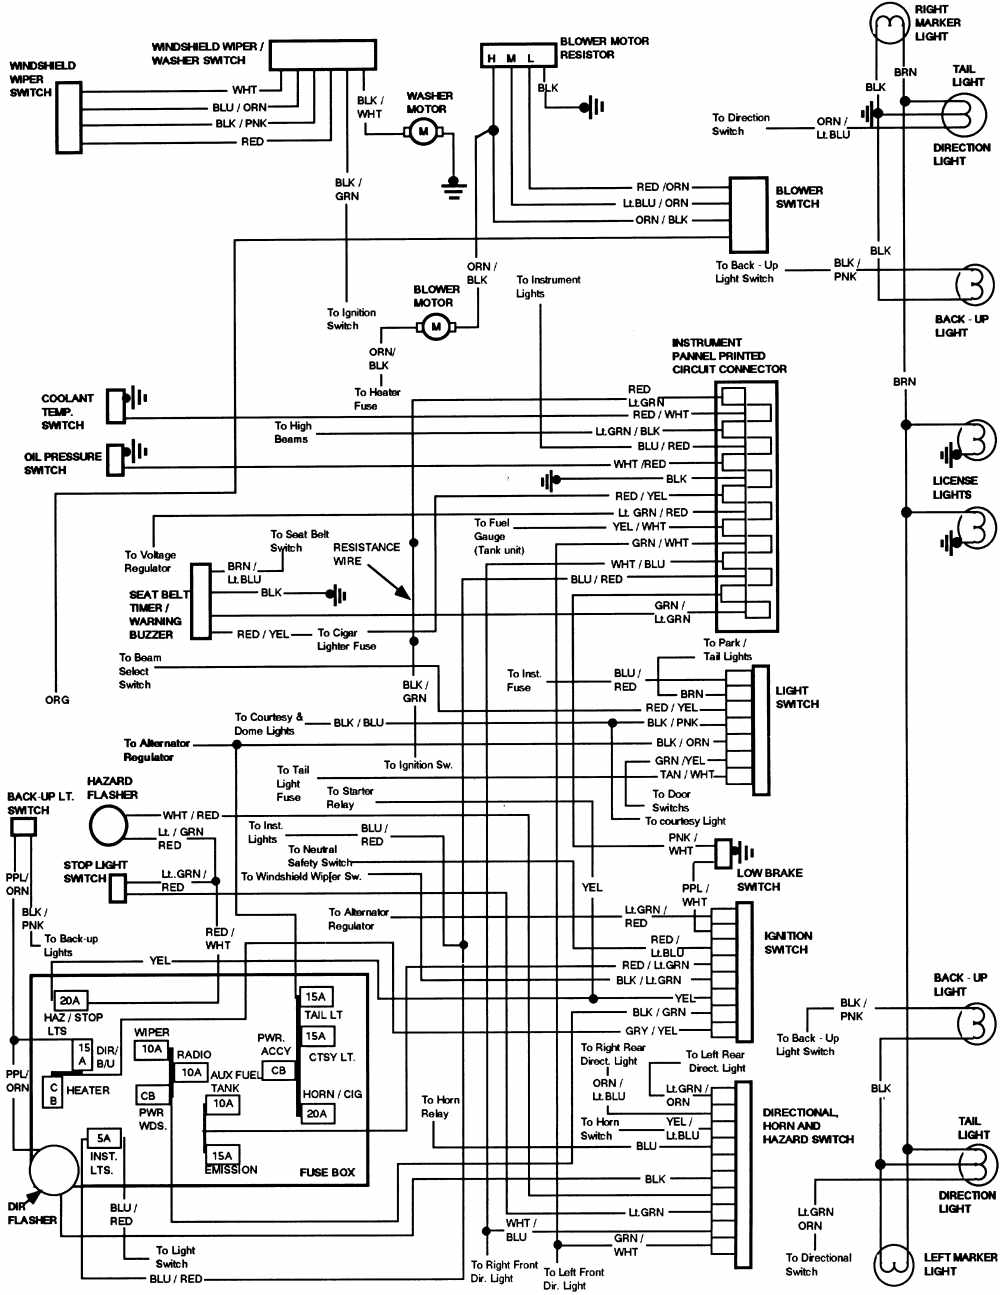 1984 Ford Ranger Radio Wiring Diagram Dash on ford f250 alternator wiring harness